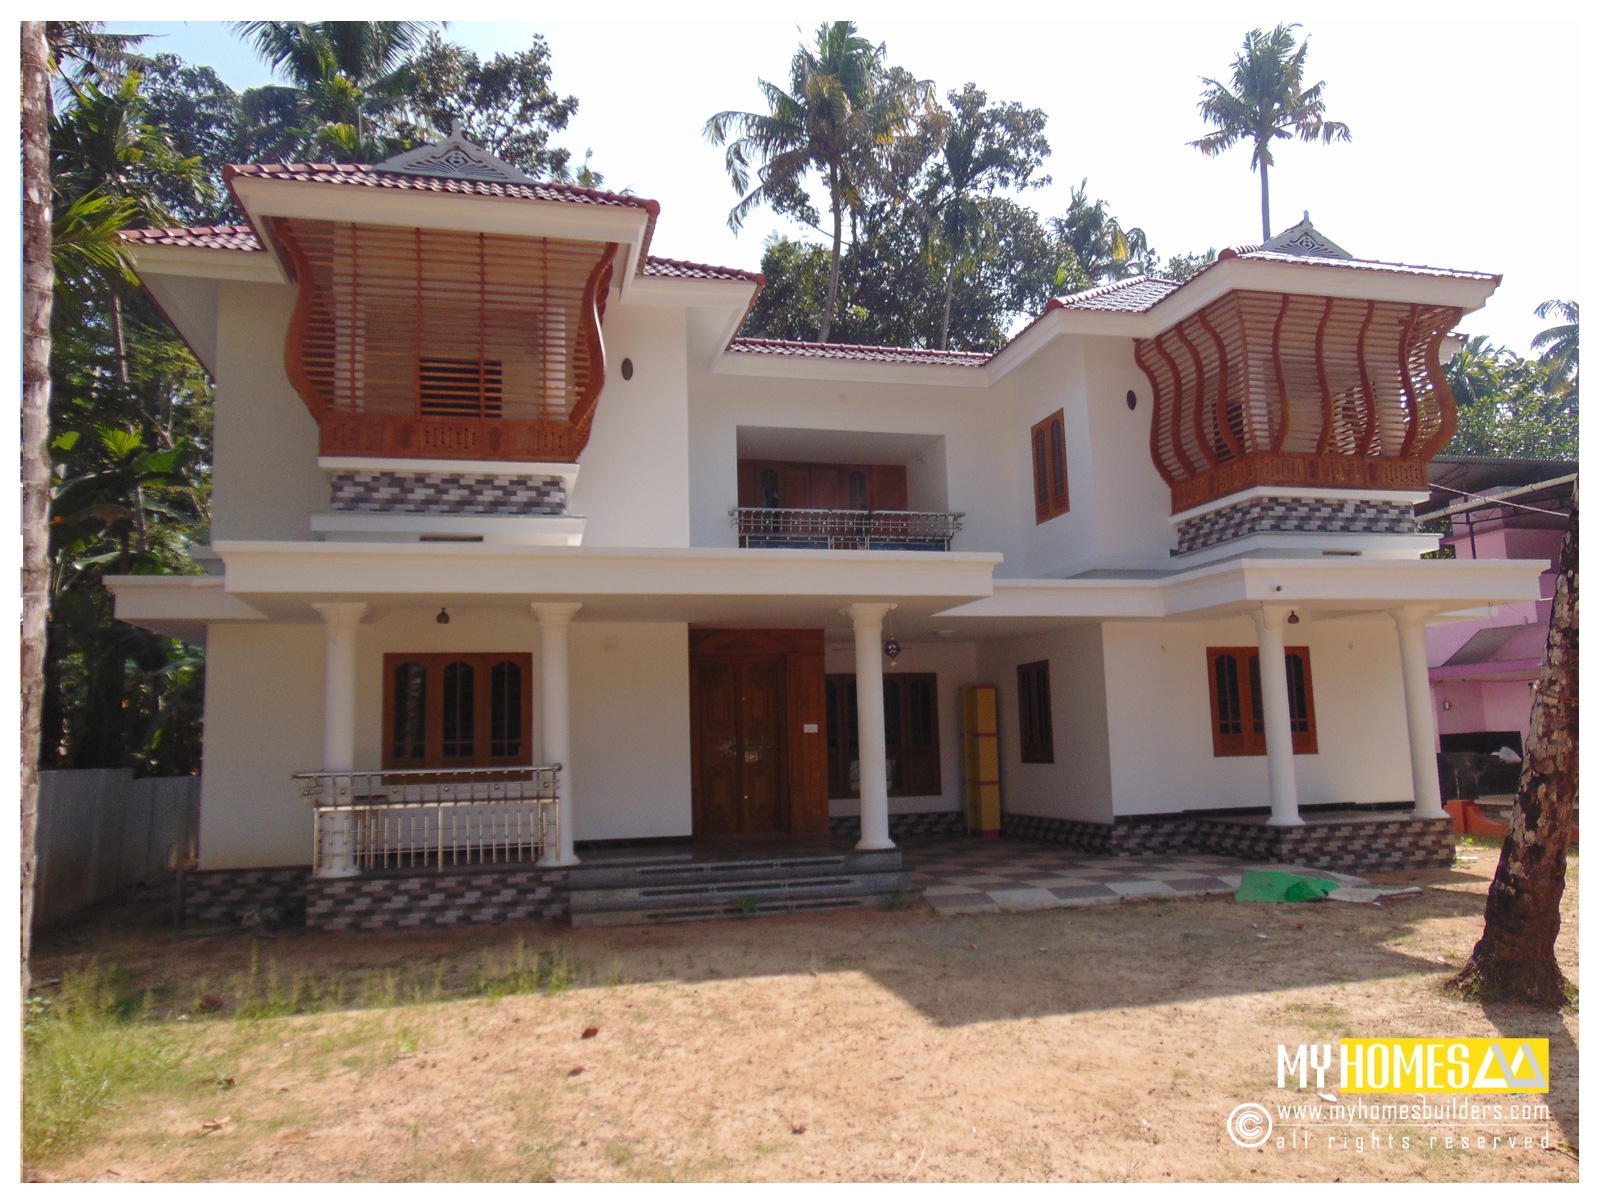 kerala traditional home design, modern kerala home design, keral best homes designs